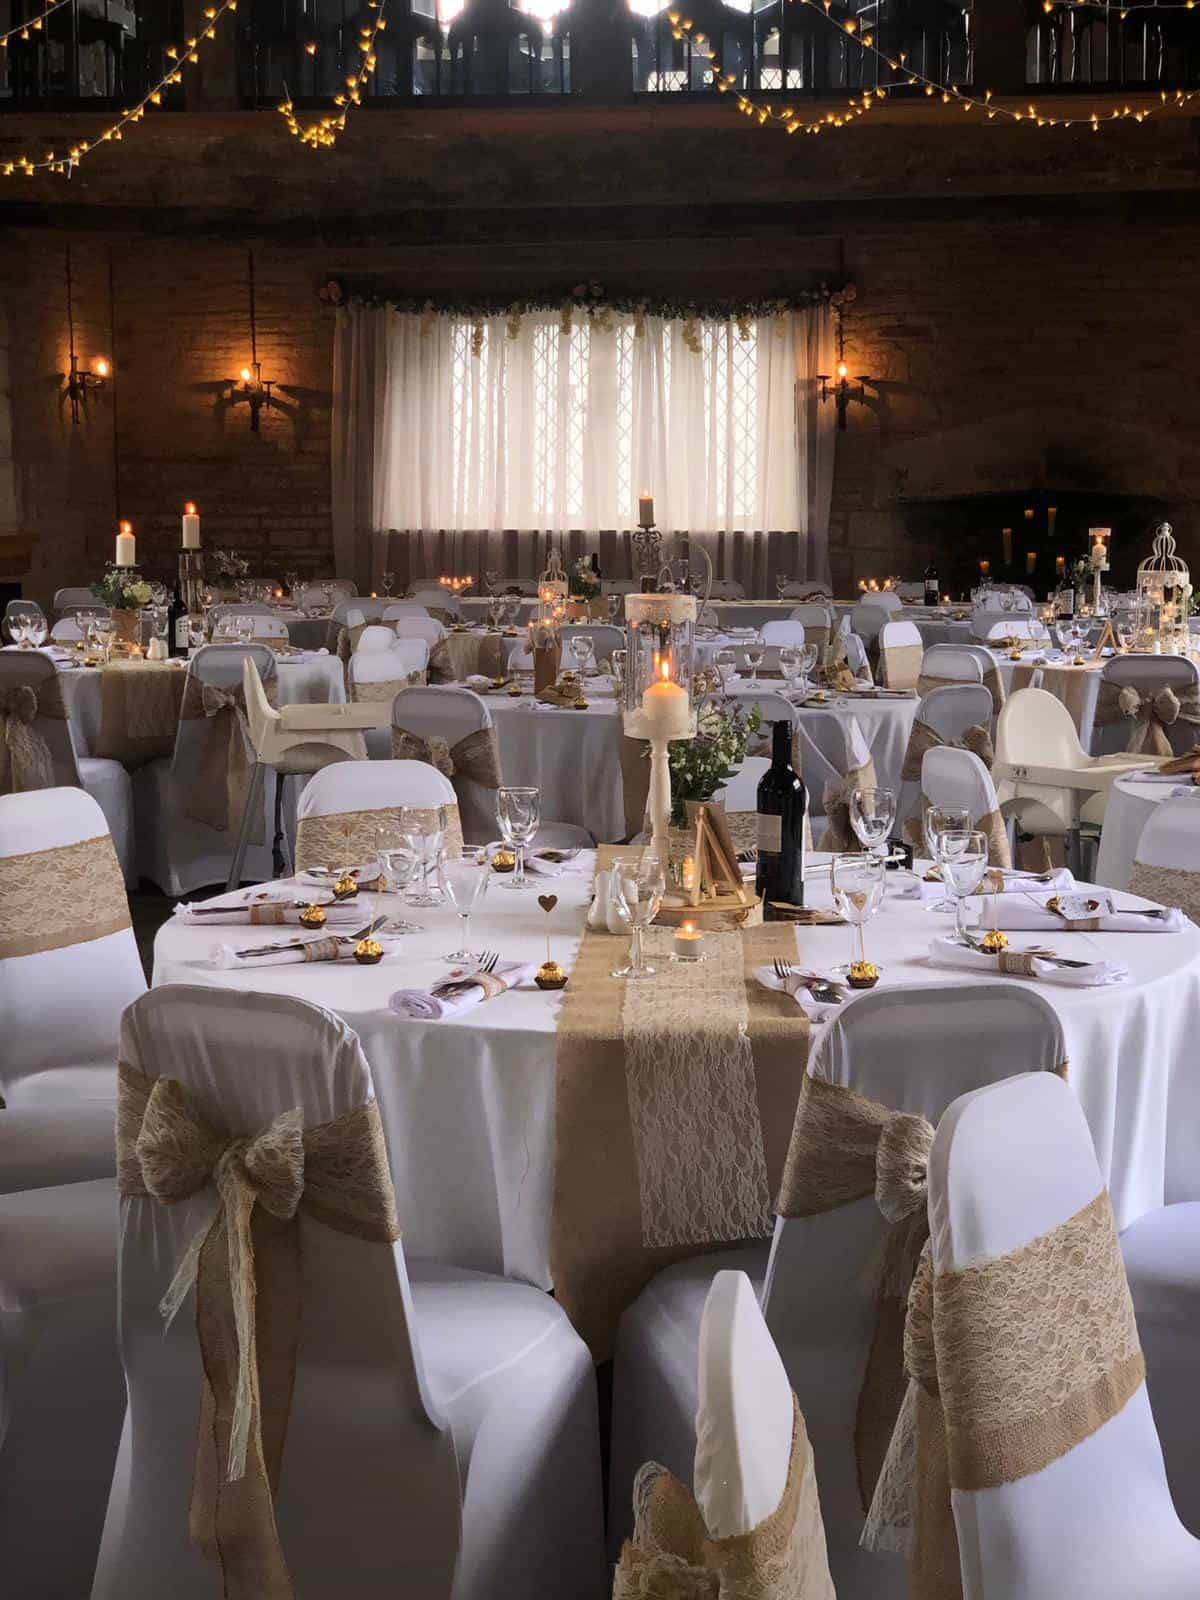 Wedding breakfast venue dressing with white linen and white chairs, and golden highlights throughout room